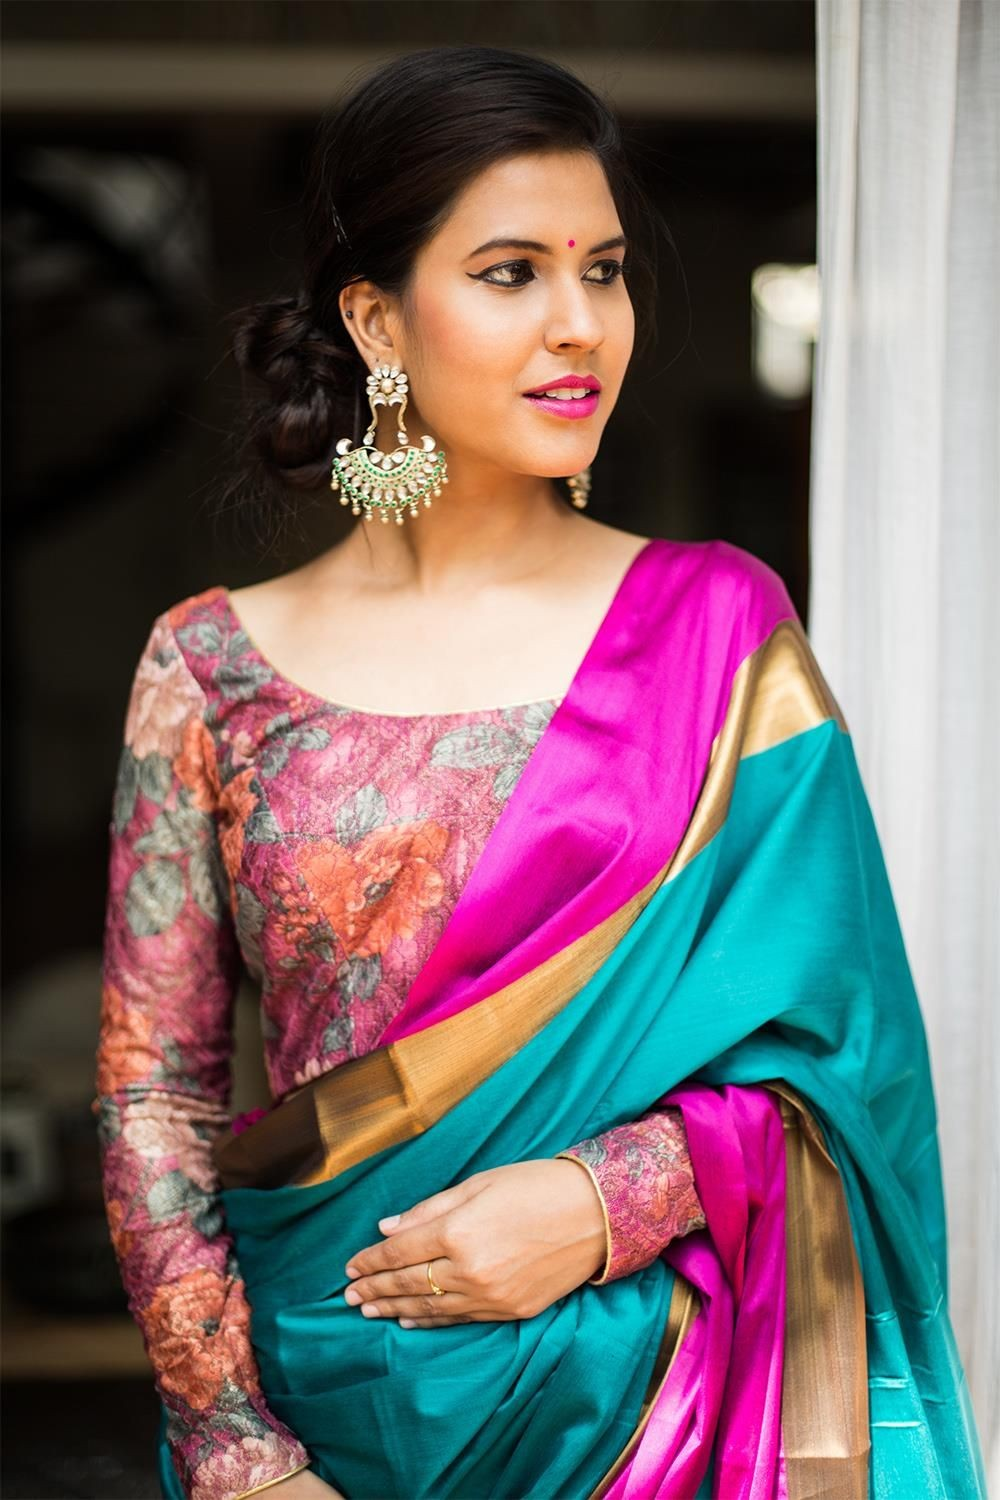 Latest Pattu Blouse Designs 2019 Images 30 Latest Pattu Saree Blouse Designs And Patterns Images Blouses Discover The Latest Best Selling Shop Women S Shirts High Quality,Understanding By Design Math Lesson Plan